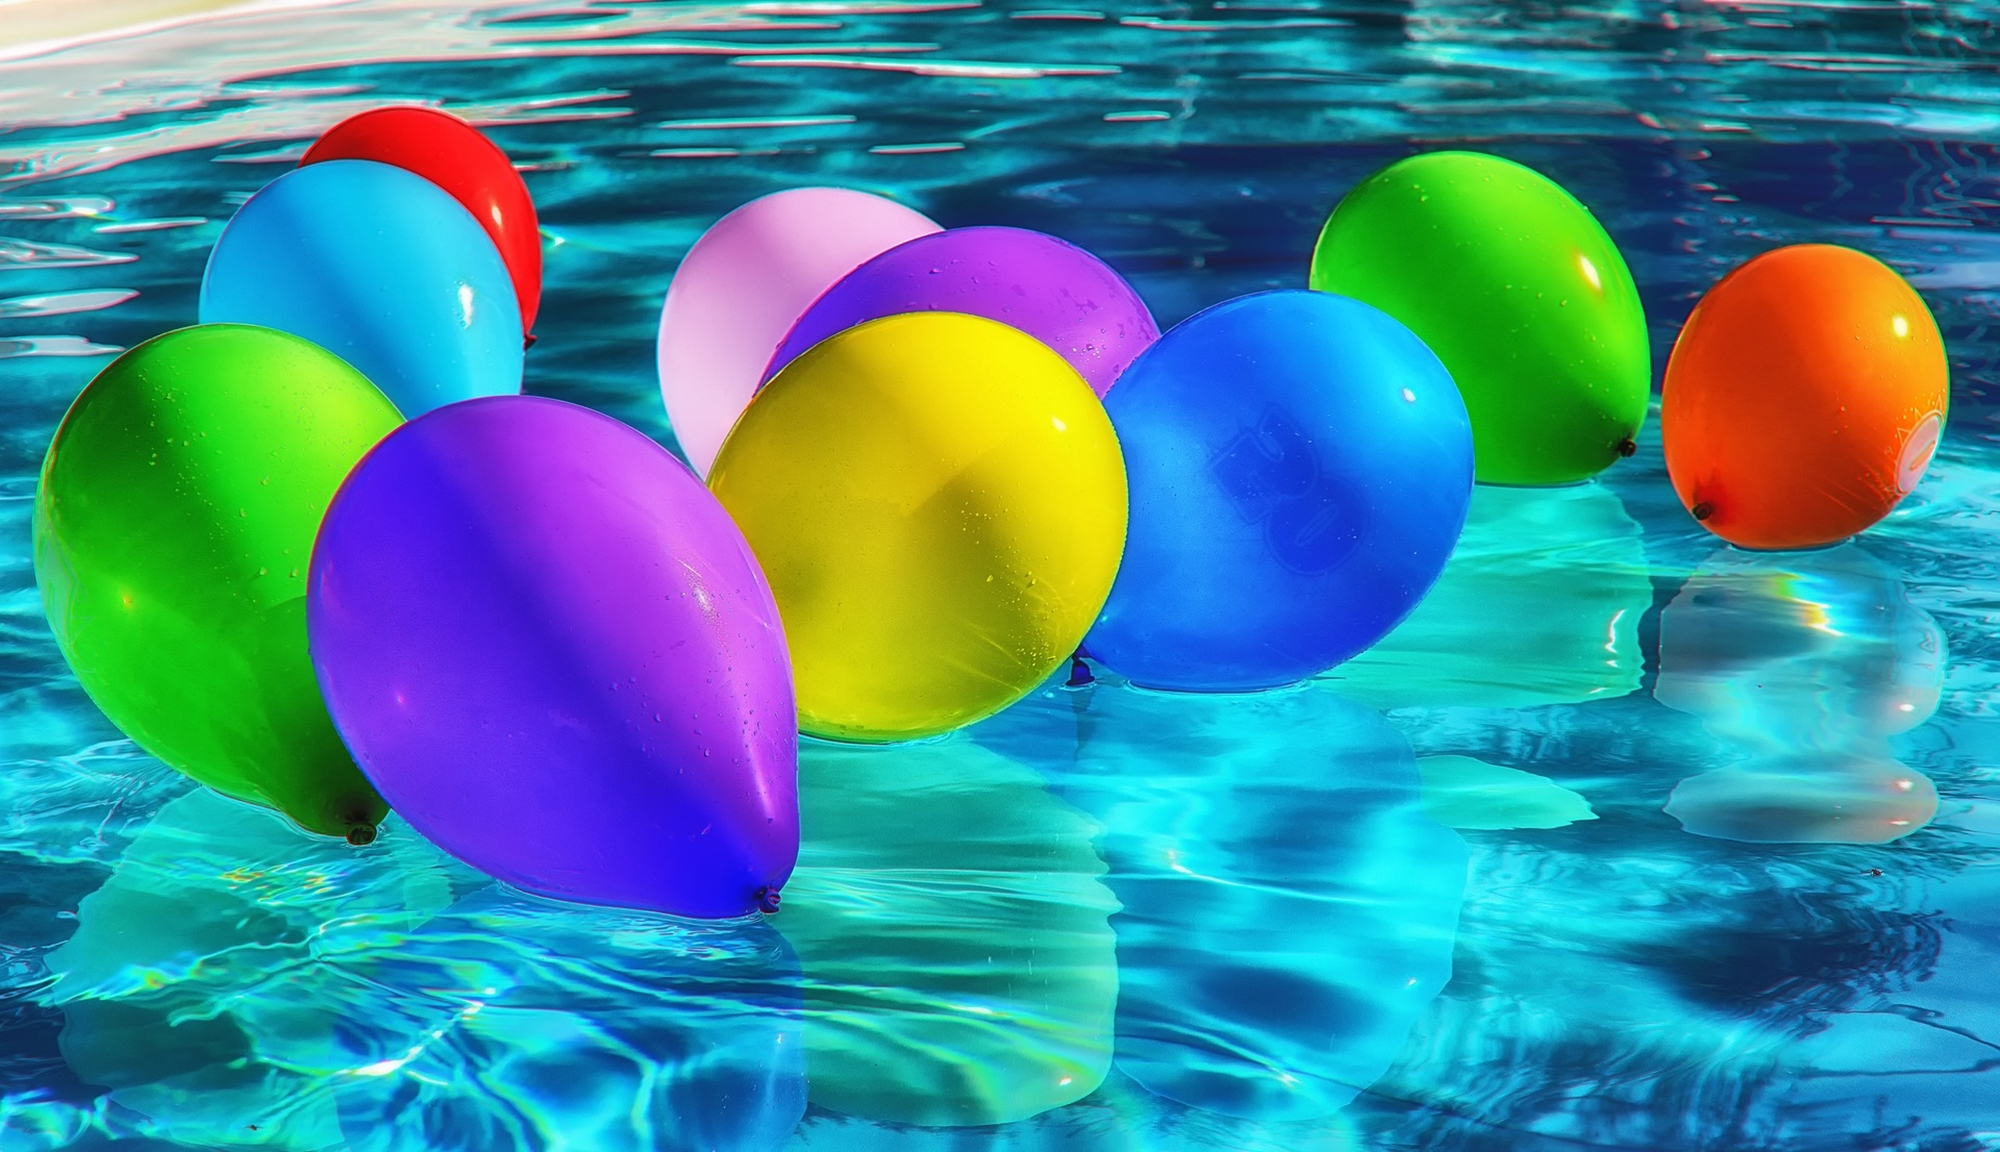 Pool Party - Balloons